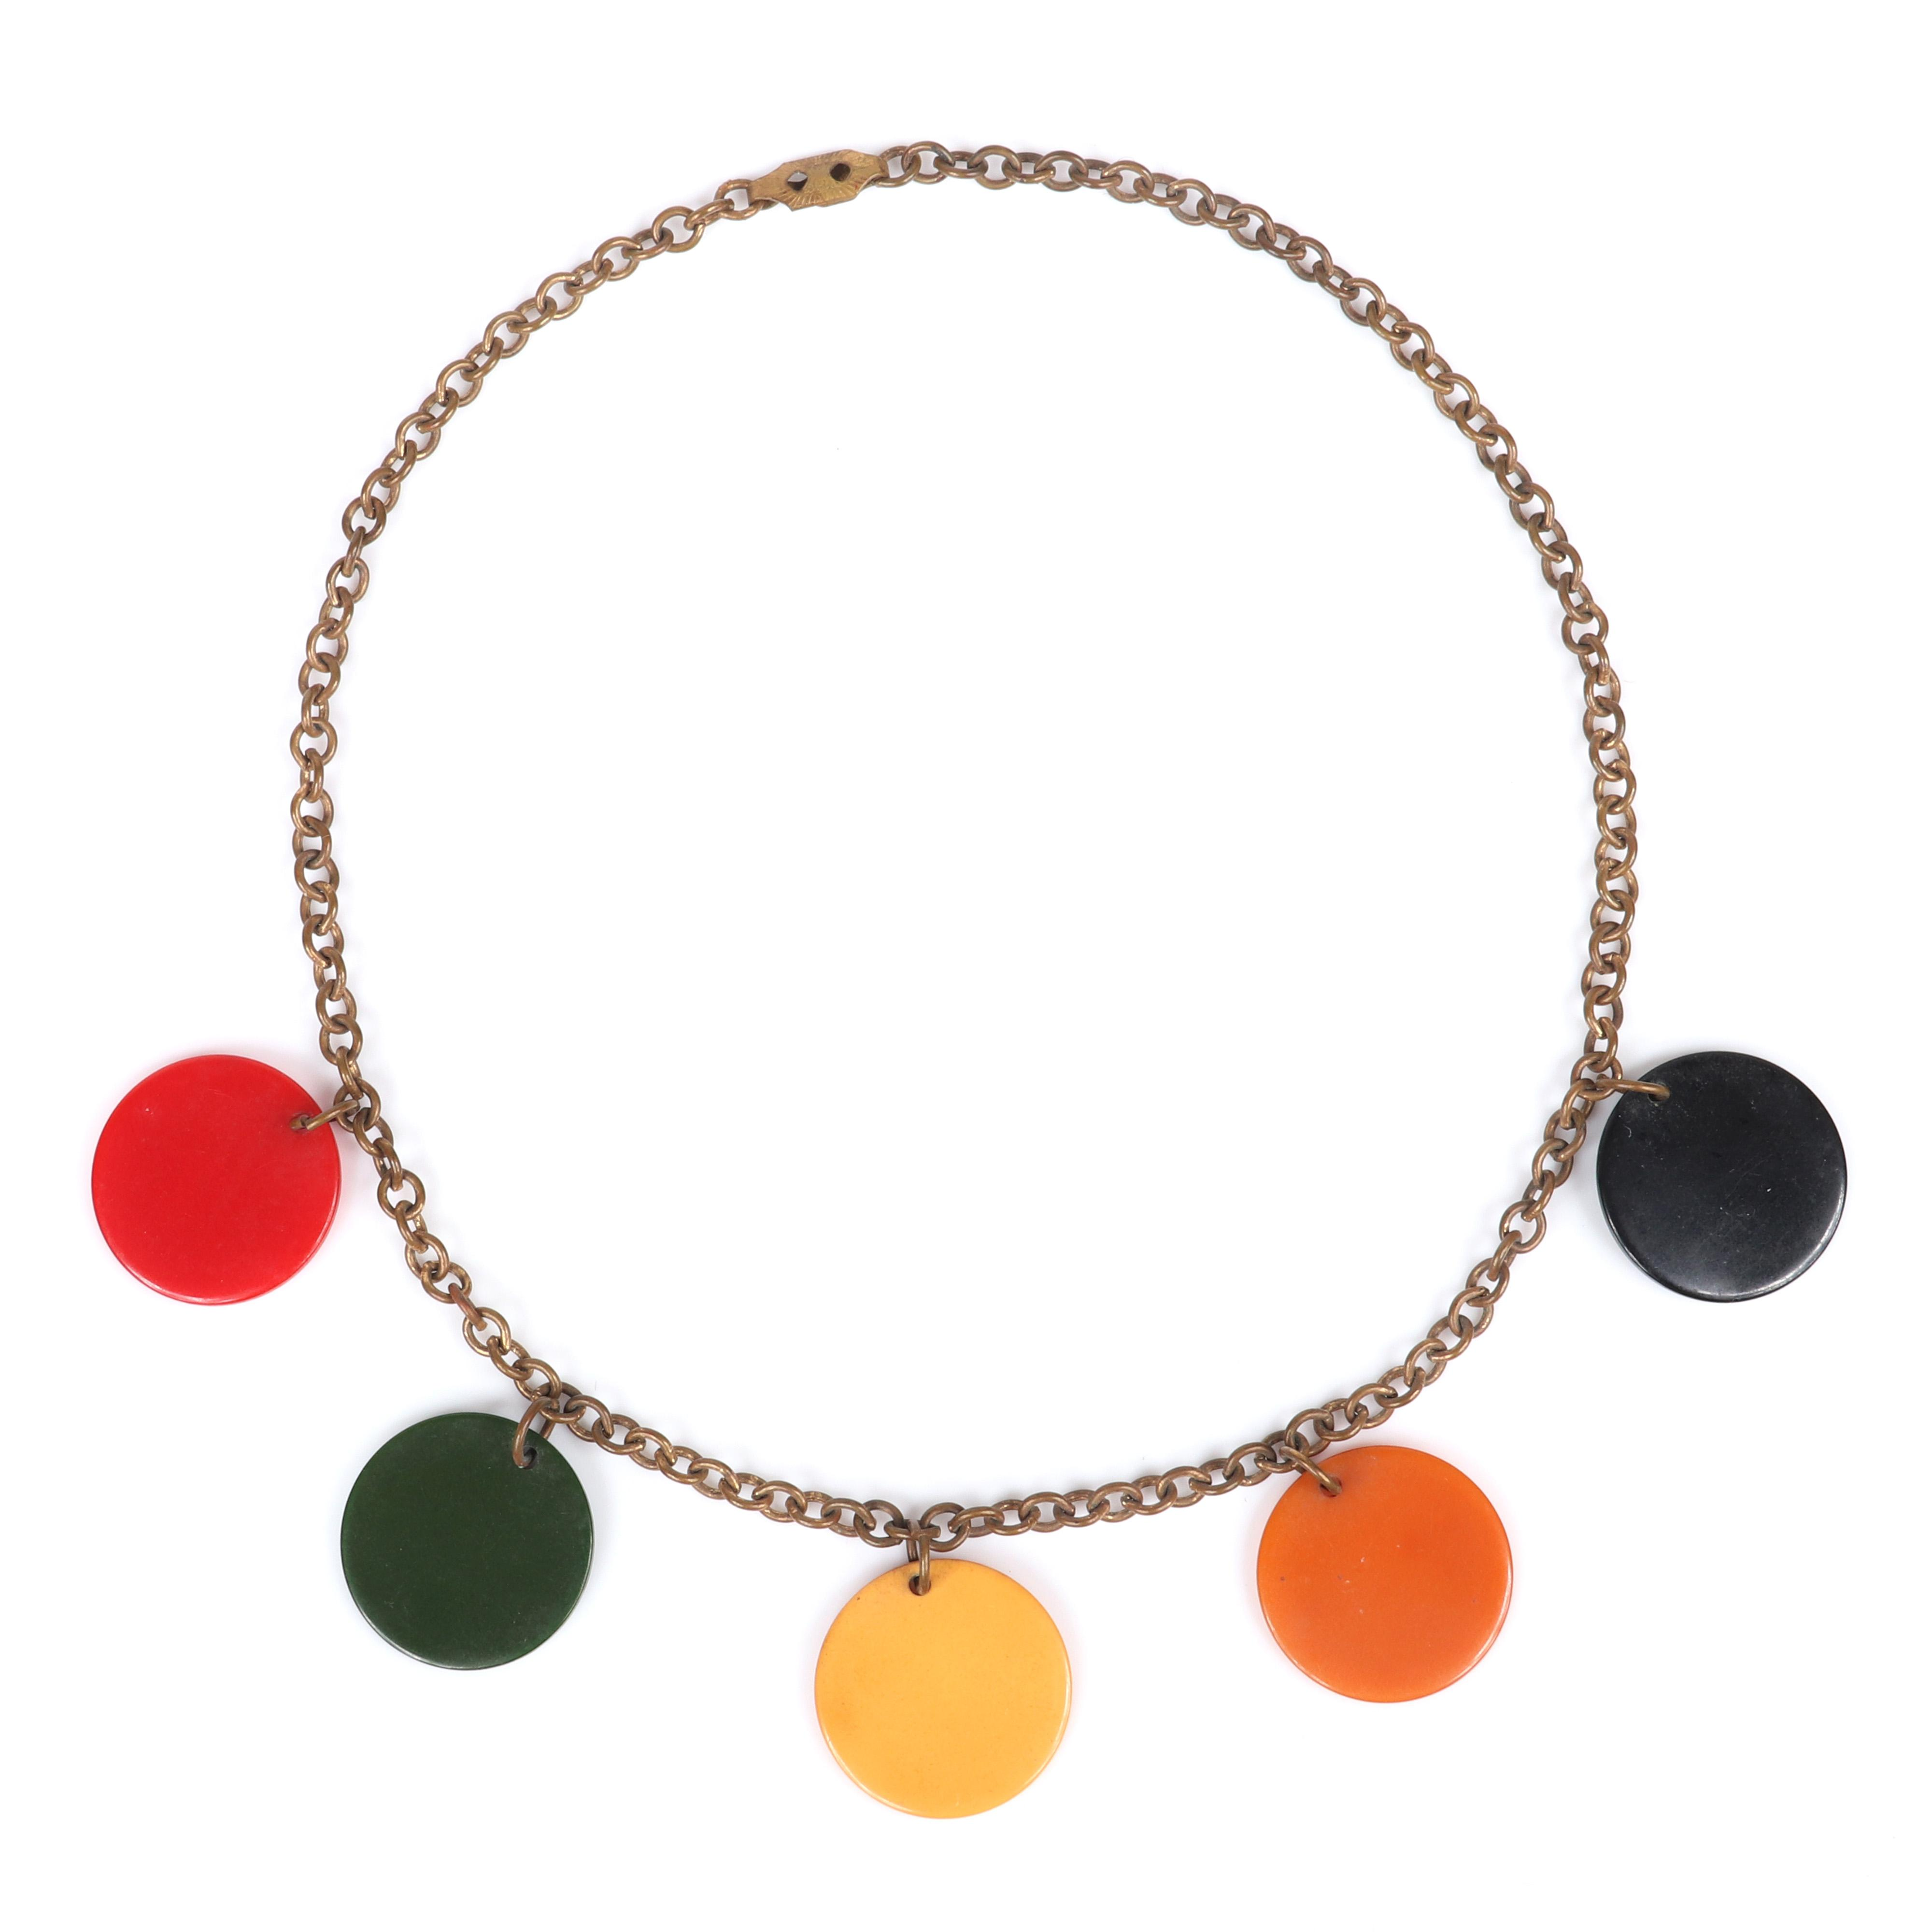 """Vintage Bakelite choker necklace with brass chain and 5 multi color disk charms in black, orange, cream, green, and tomato red. 14""""L, 7/8""""diam (each disk)"""